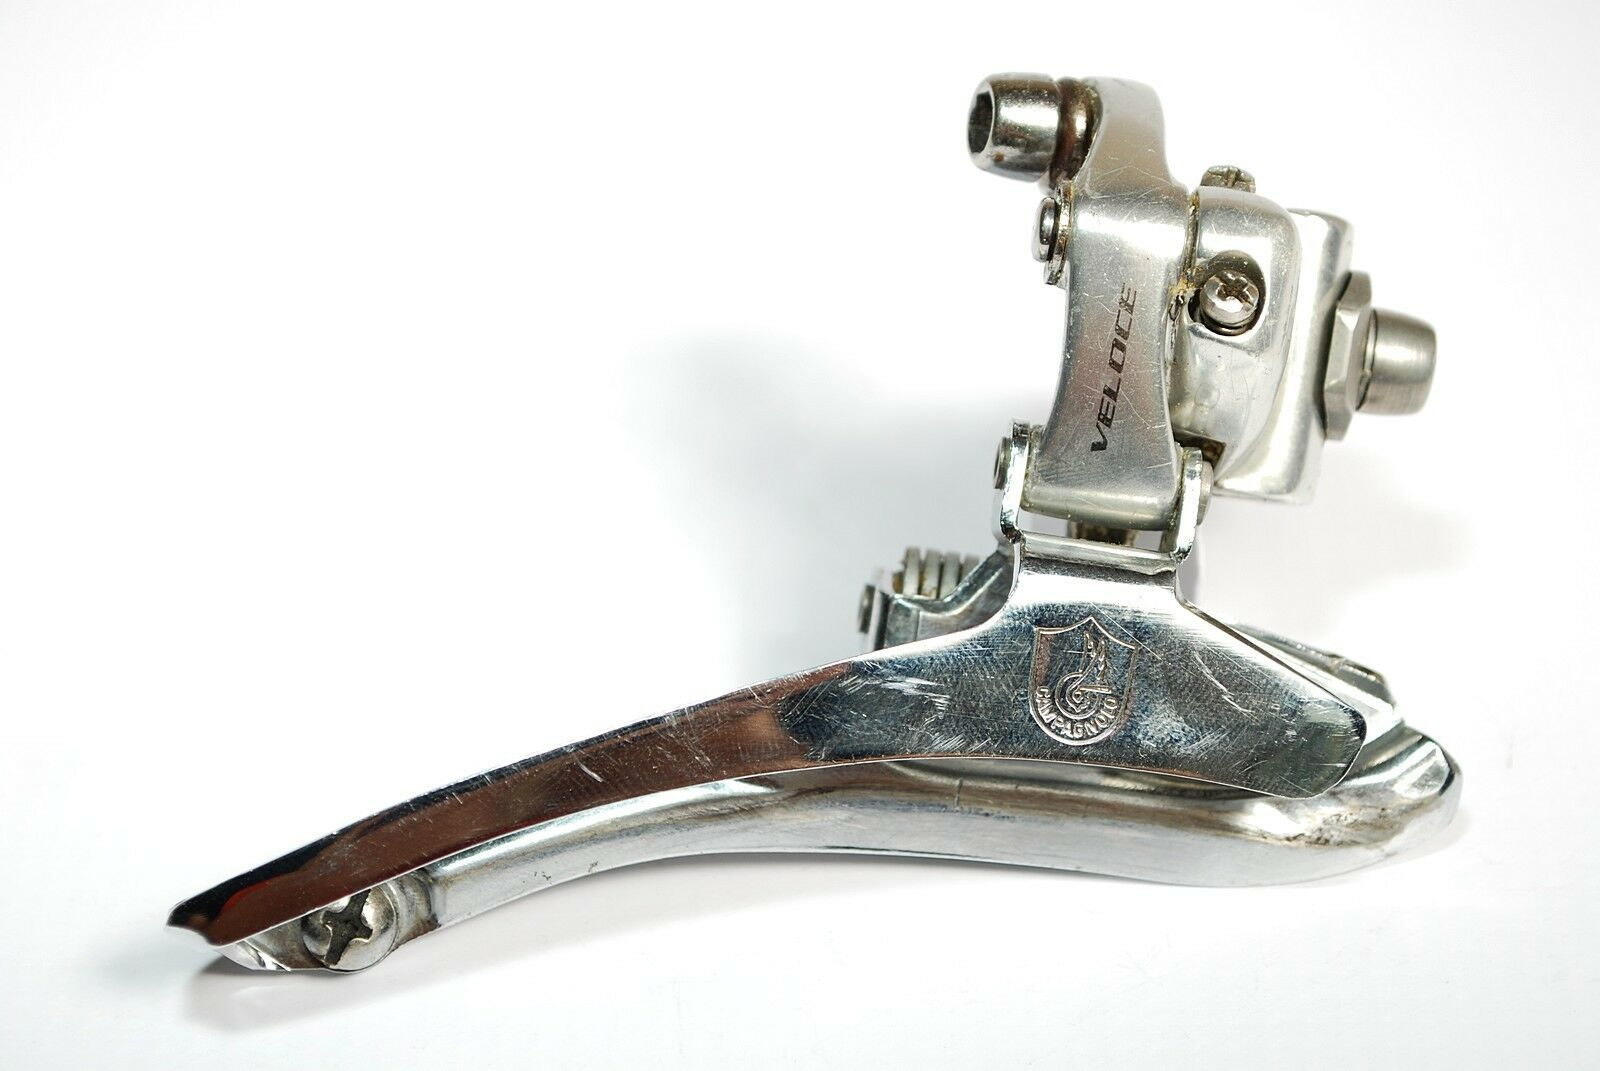 Vintage Campagnolo Veloce Bicycle Front Derailleur Road Bike Braze  On Mech  novelty items